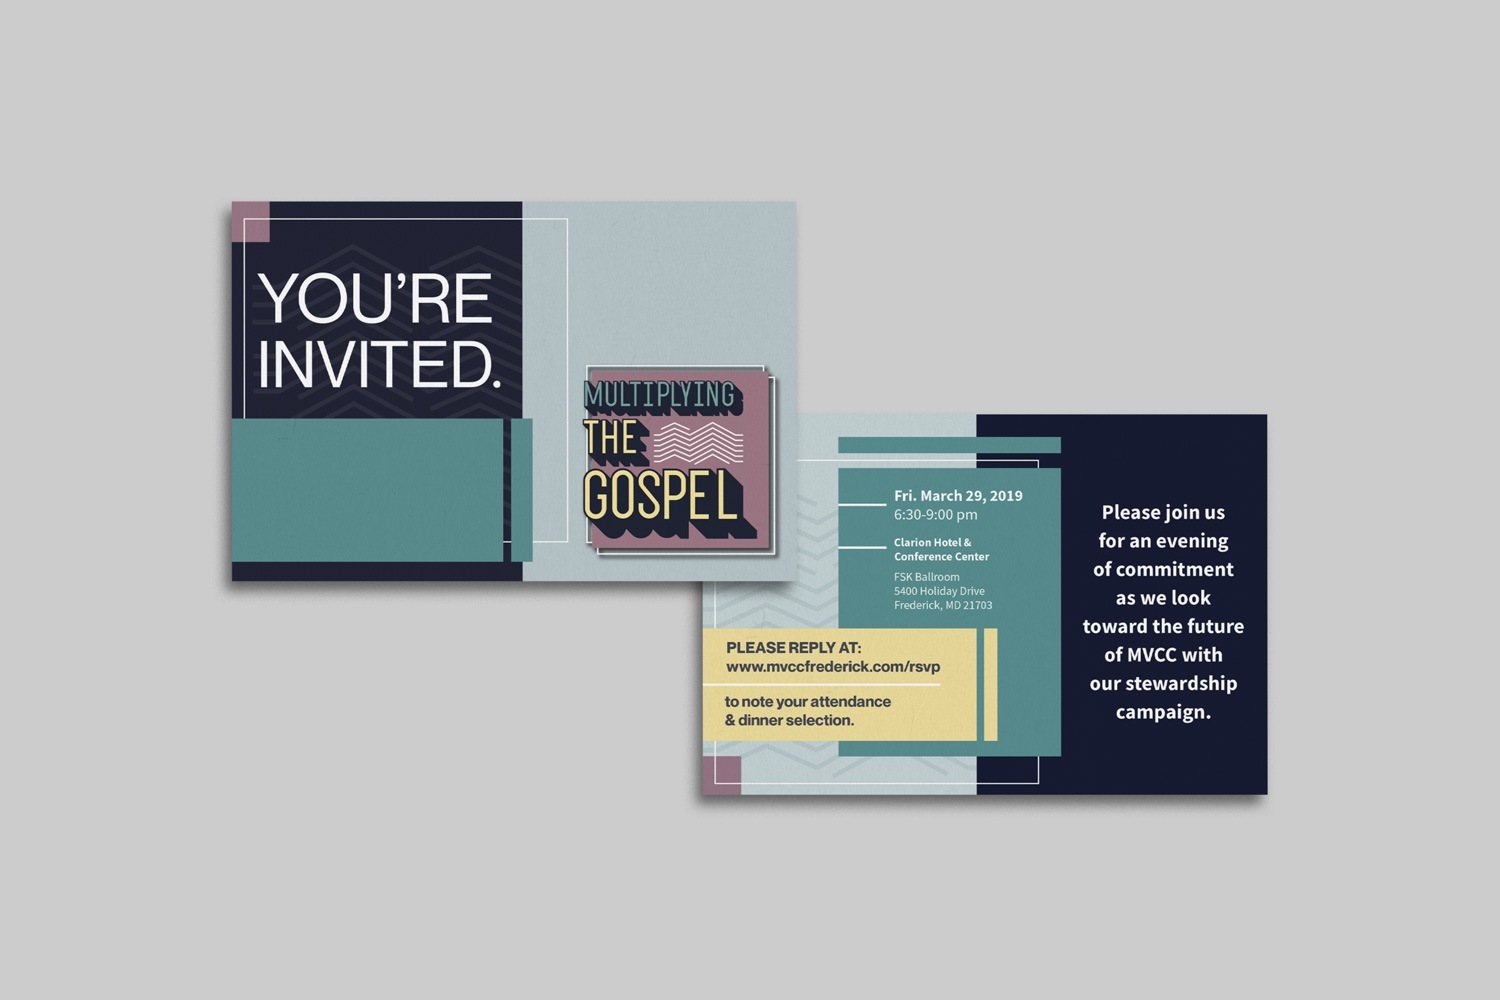 Church capital campaign 4 x 6 in. postcard invitations by Abstract Union in Lincoln, NE